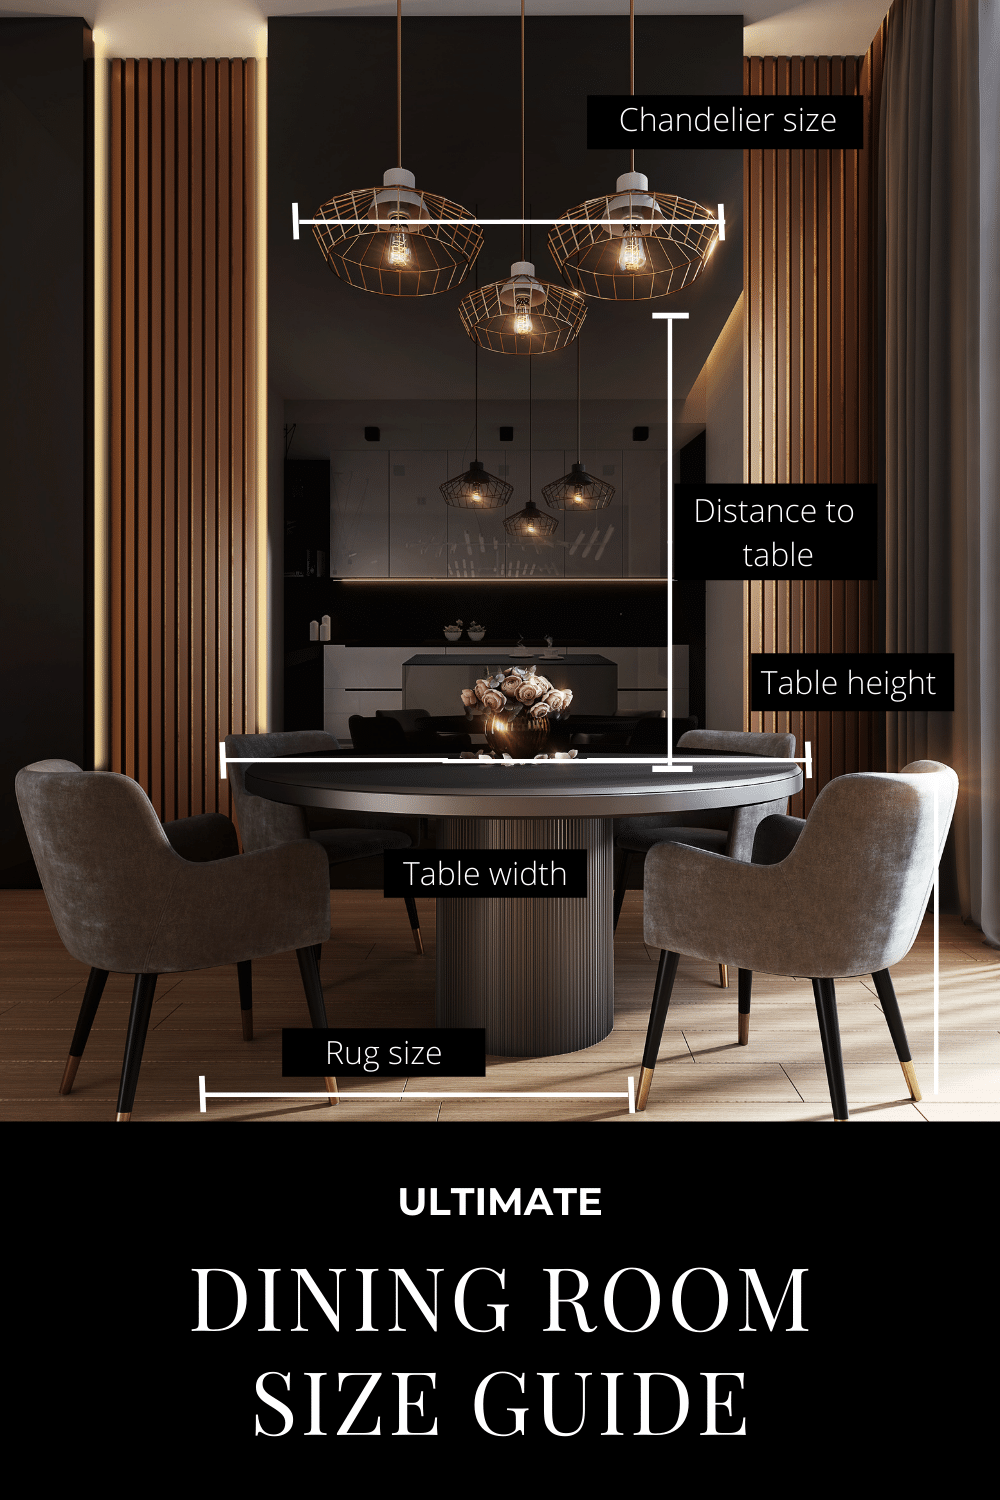 Comprehensive Dining Room Size Guide & Style Guide